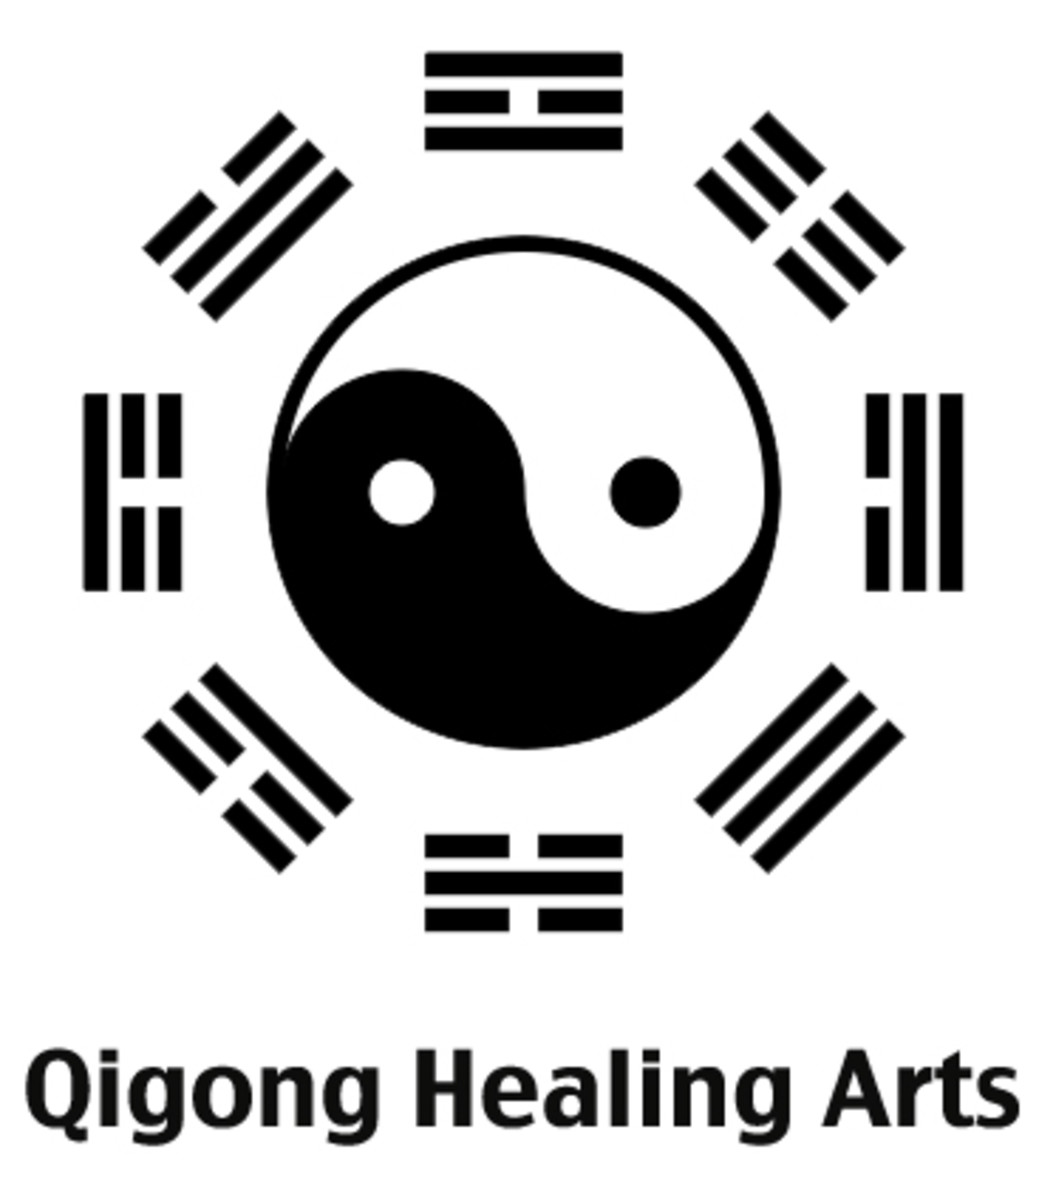 The qigong healing arts are based in Taoist alchemical principles as represented by both the Tai Chi symbol (inner part of the diagram) and the ba qua (ideograms on the outer part of the diagram.